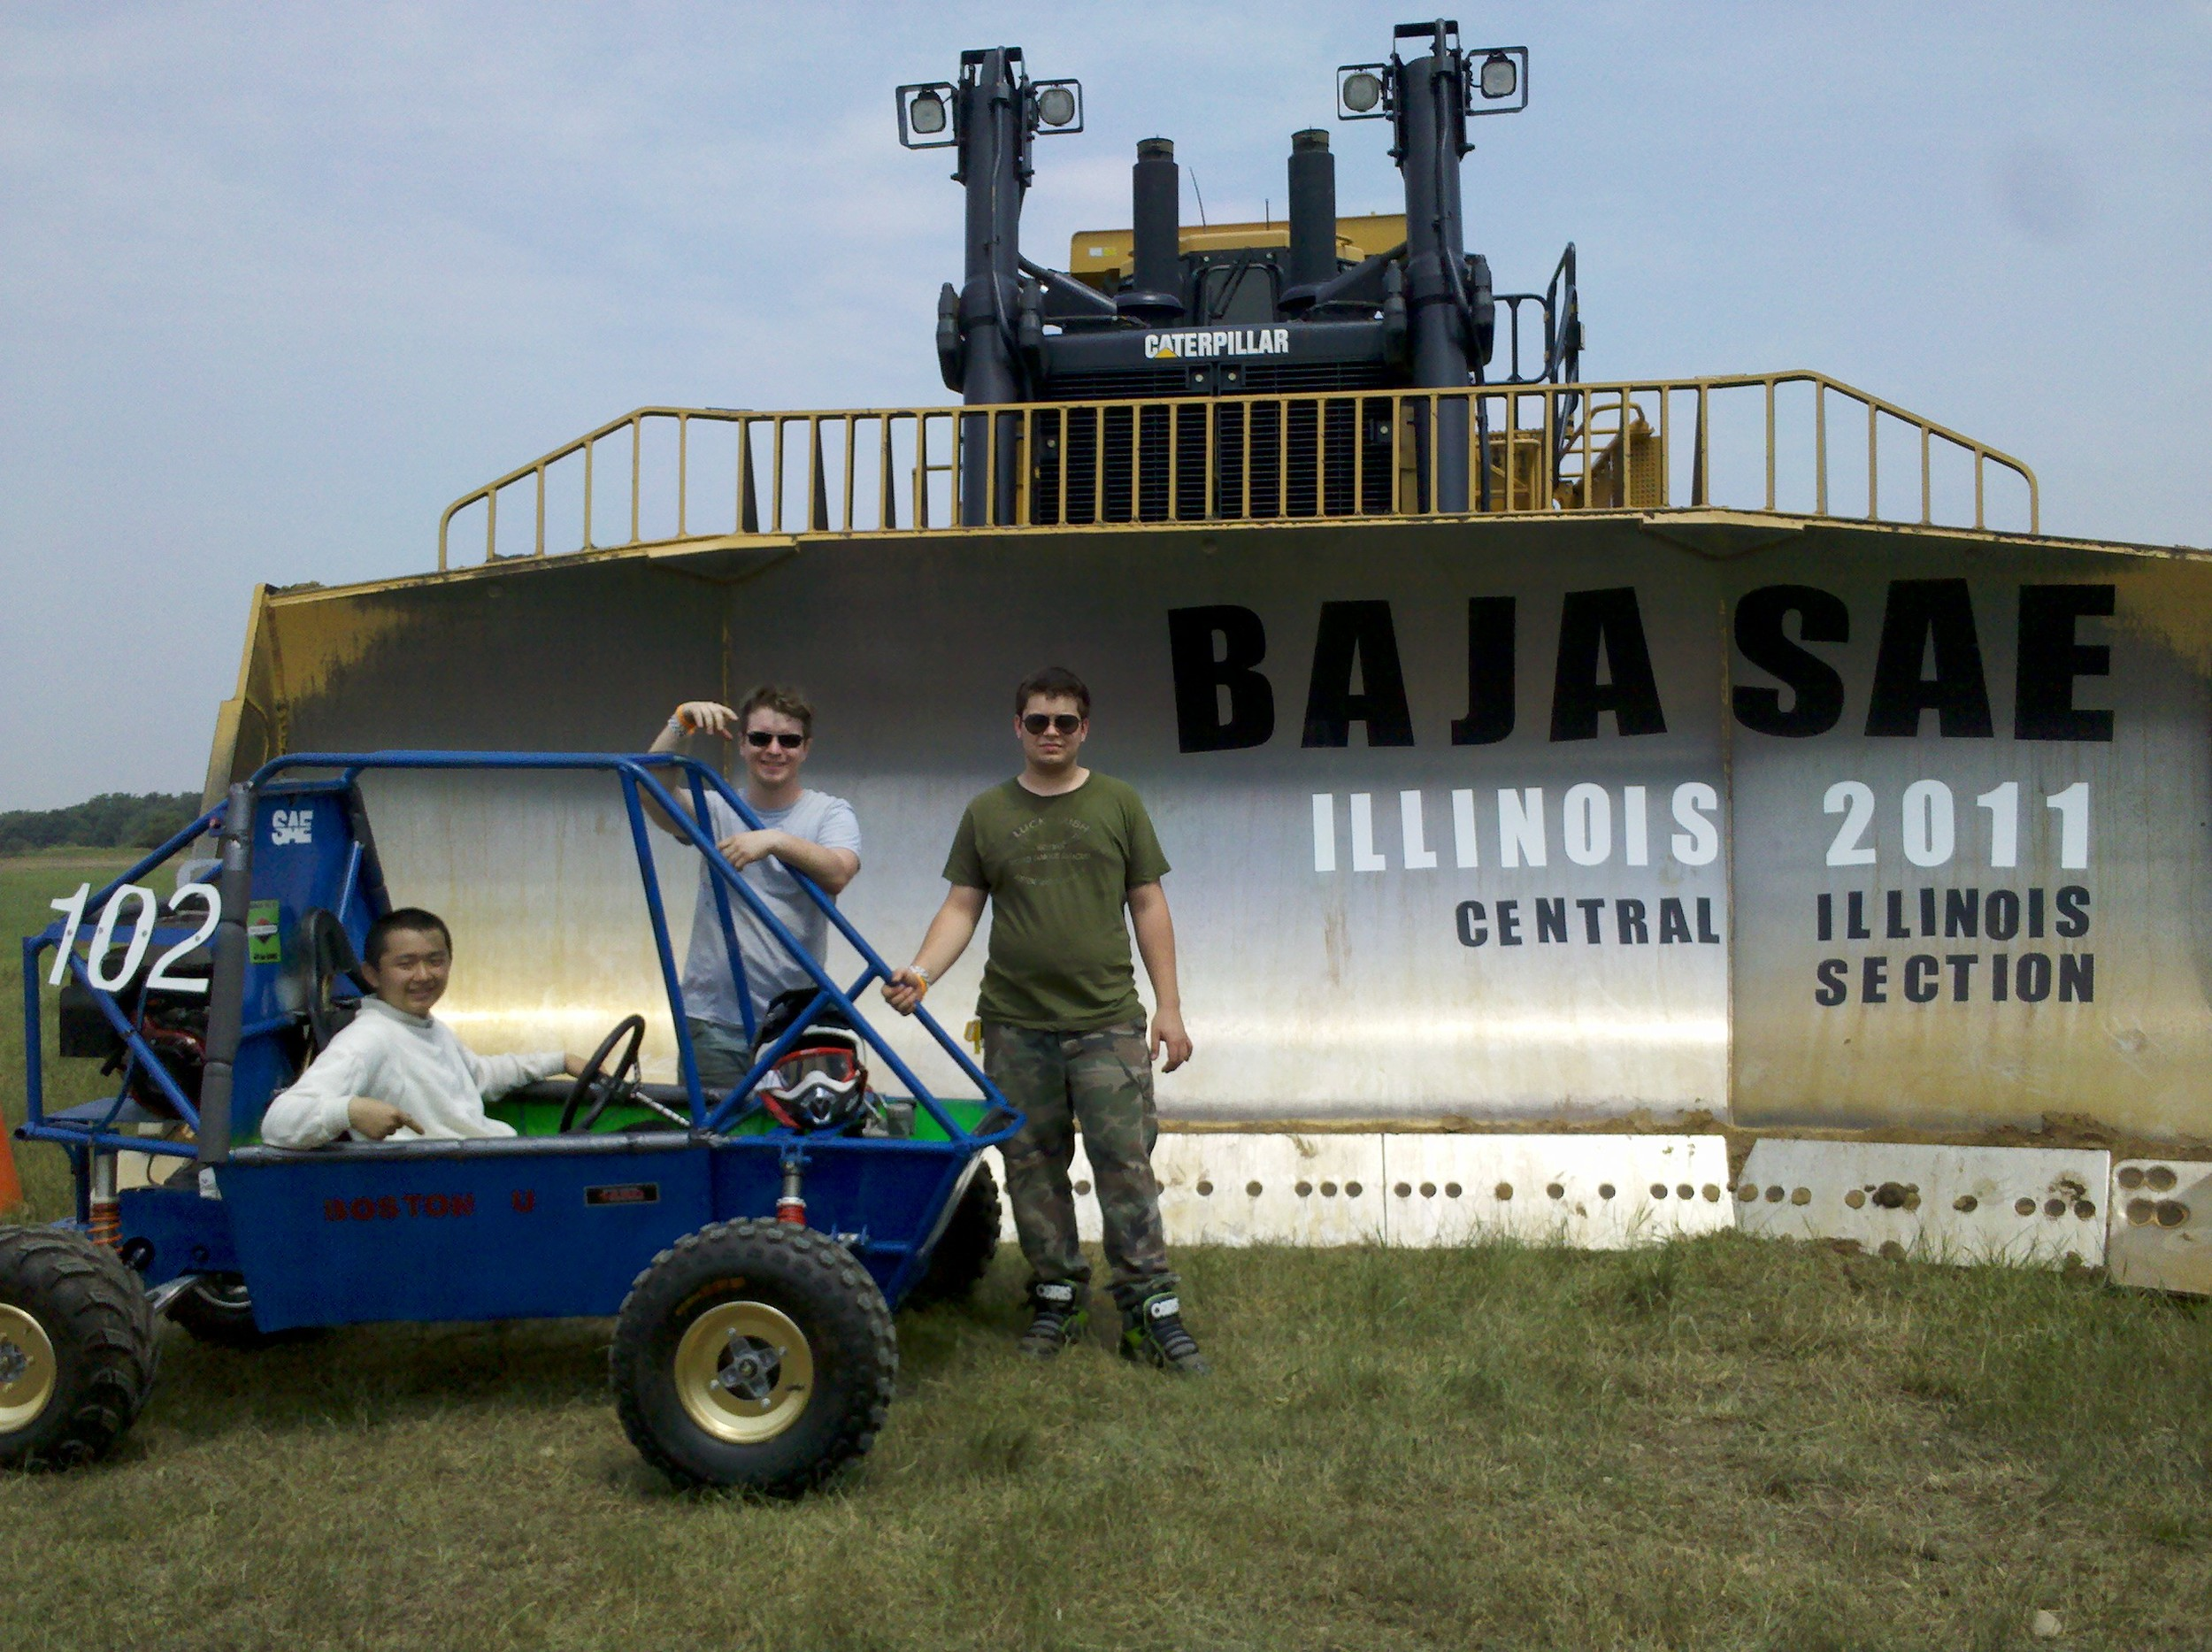 The 2011 BU Baja Team